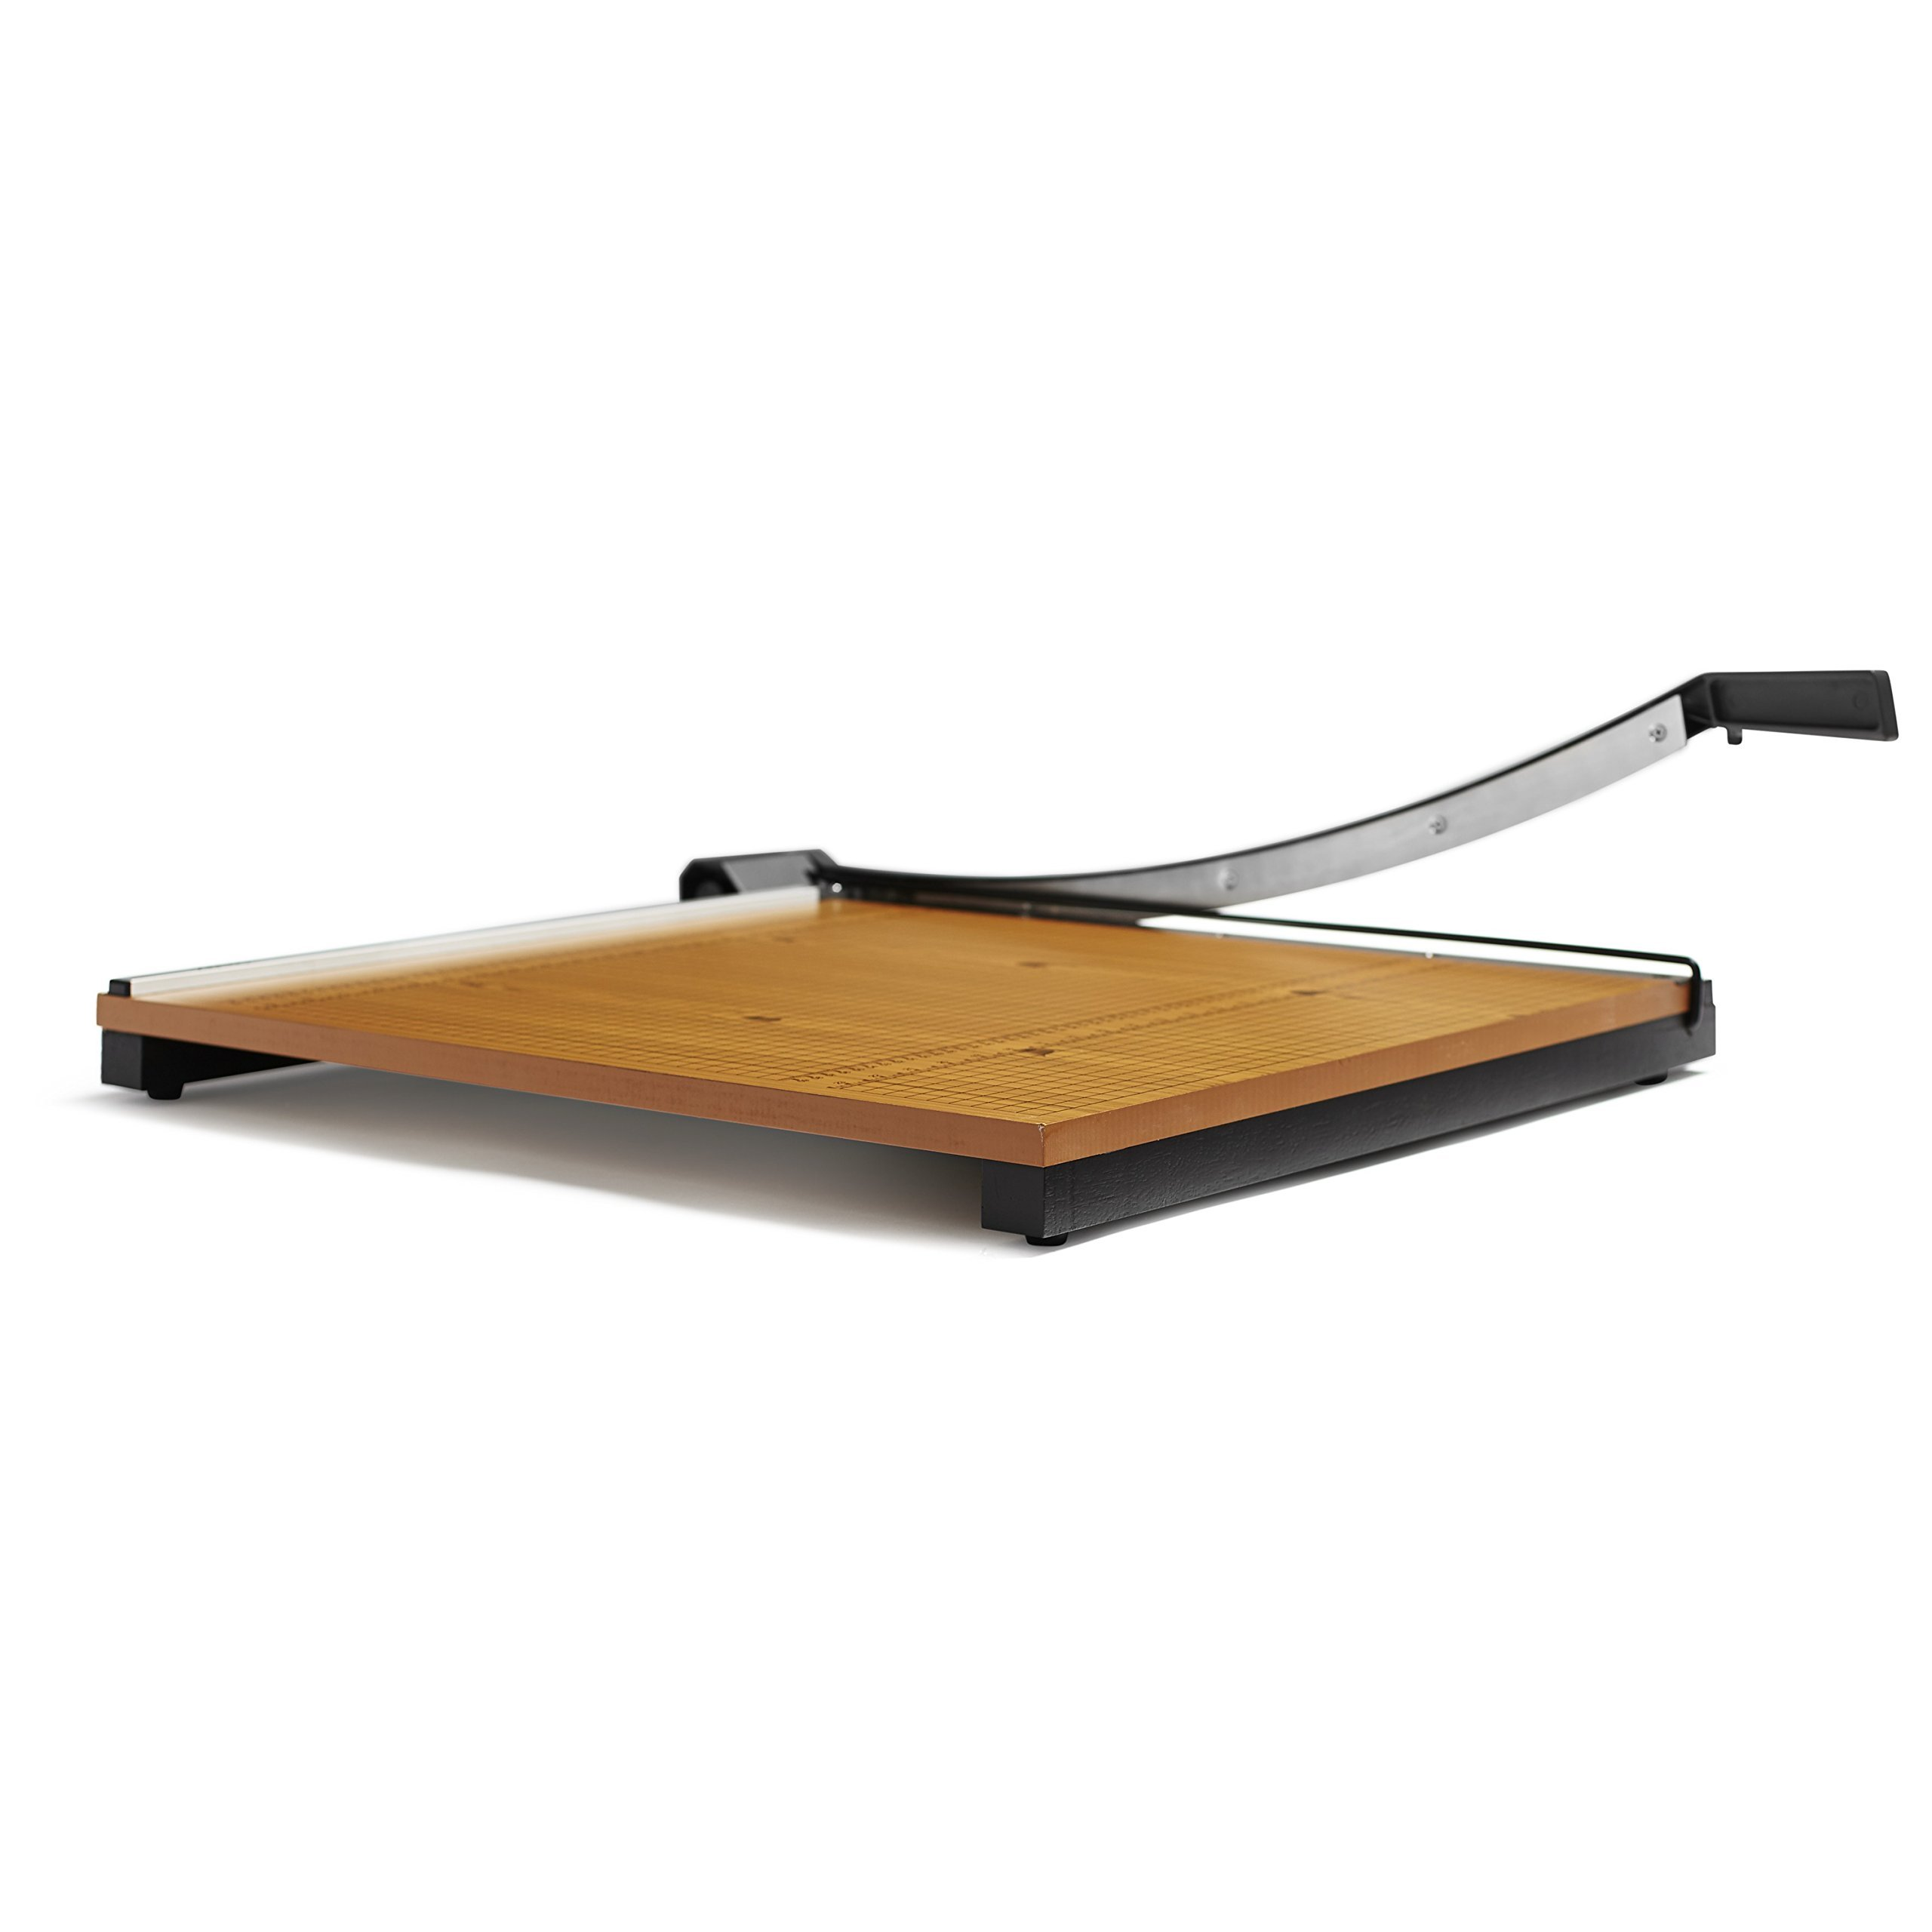 X-ACTO 24x24 Commercial Grade Square Guillotine Trimmer by X-Acto